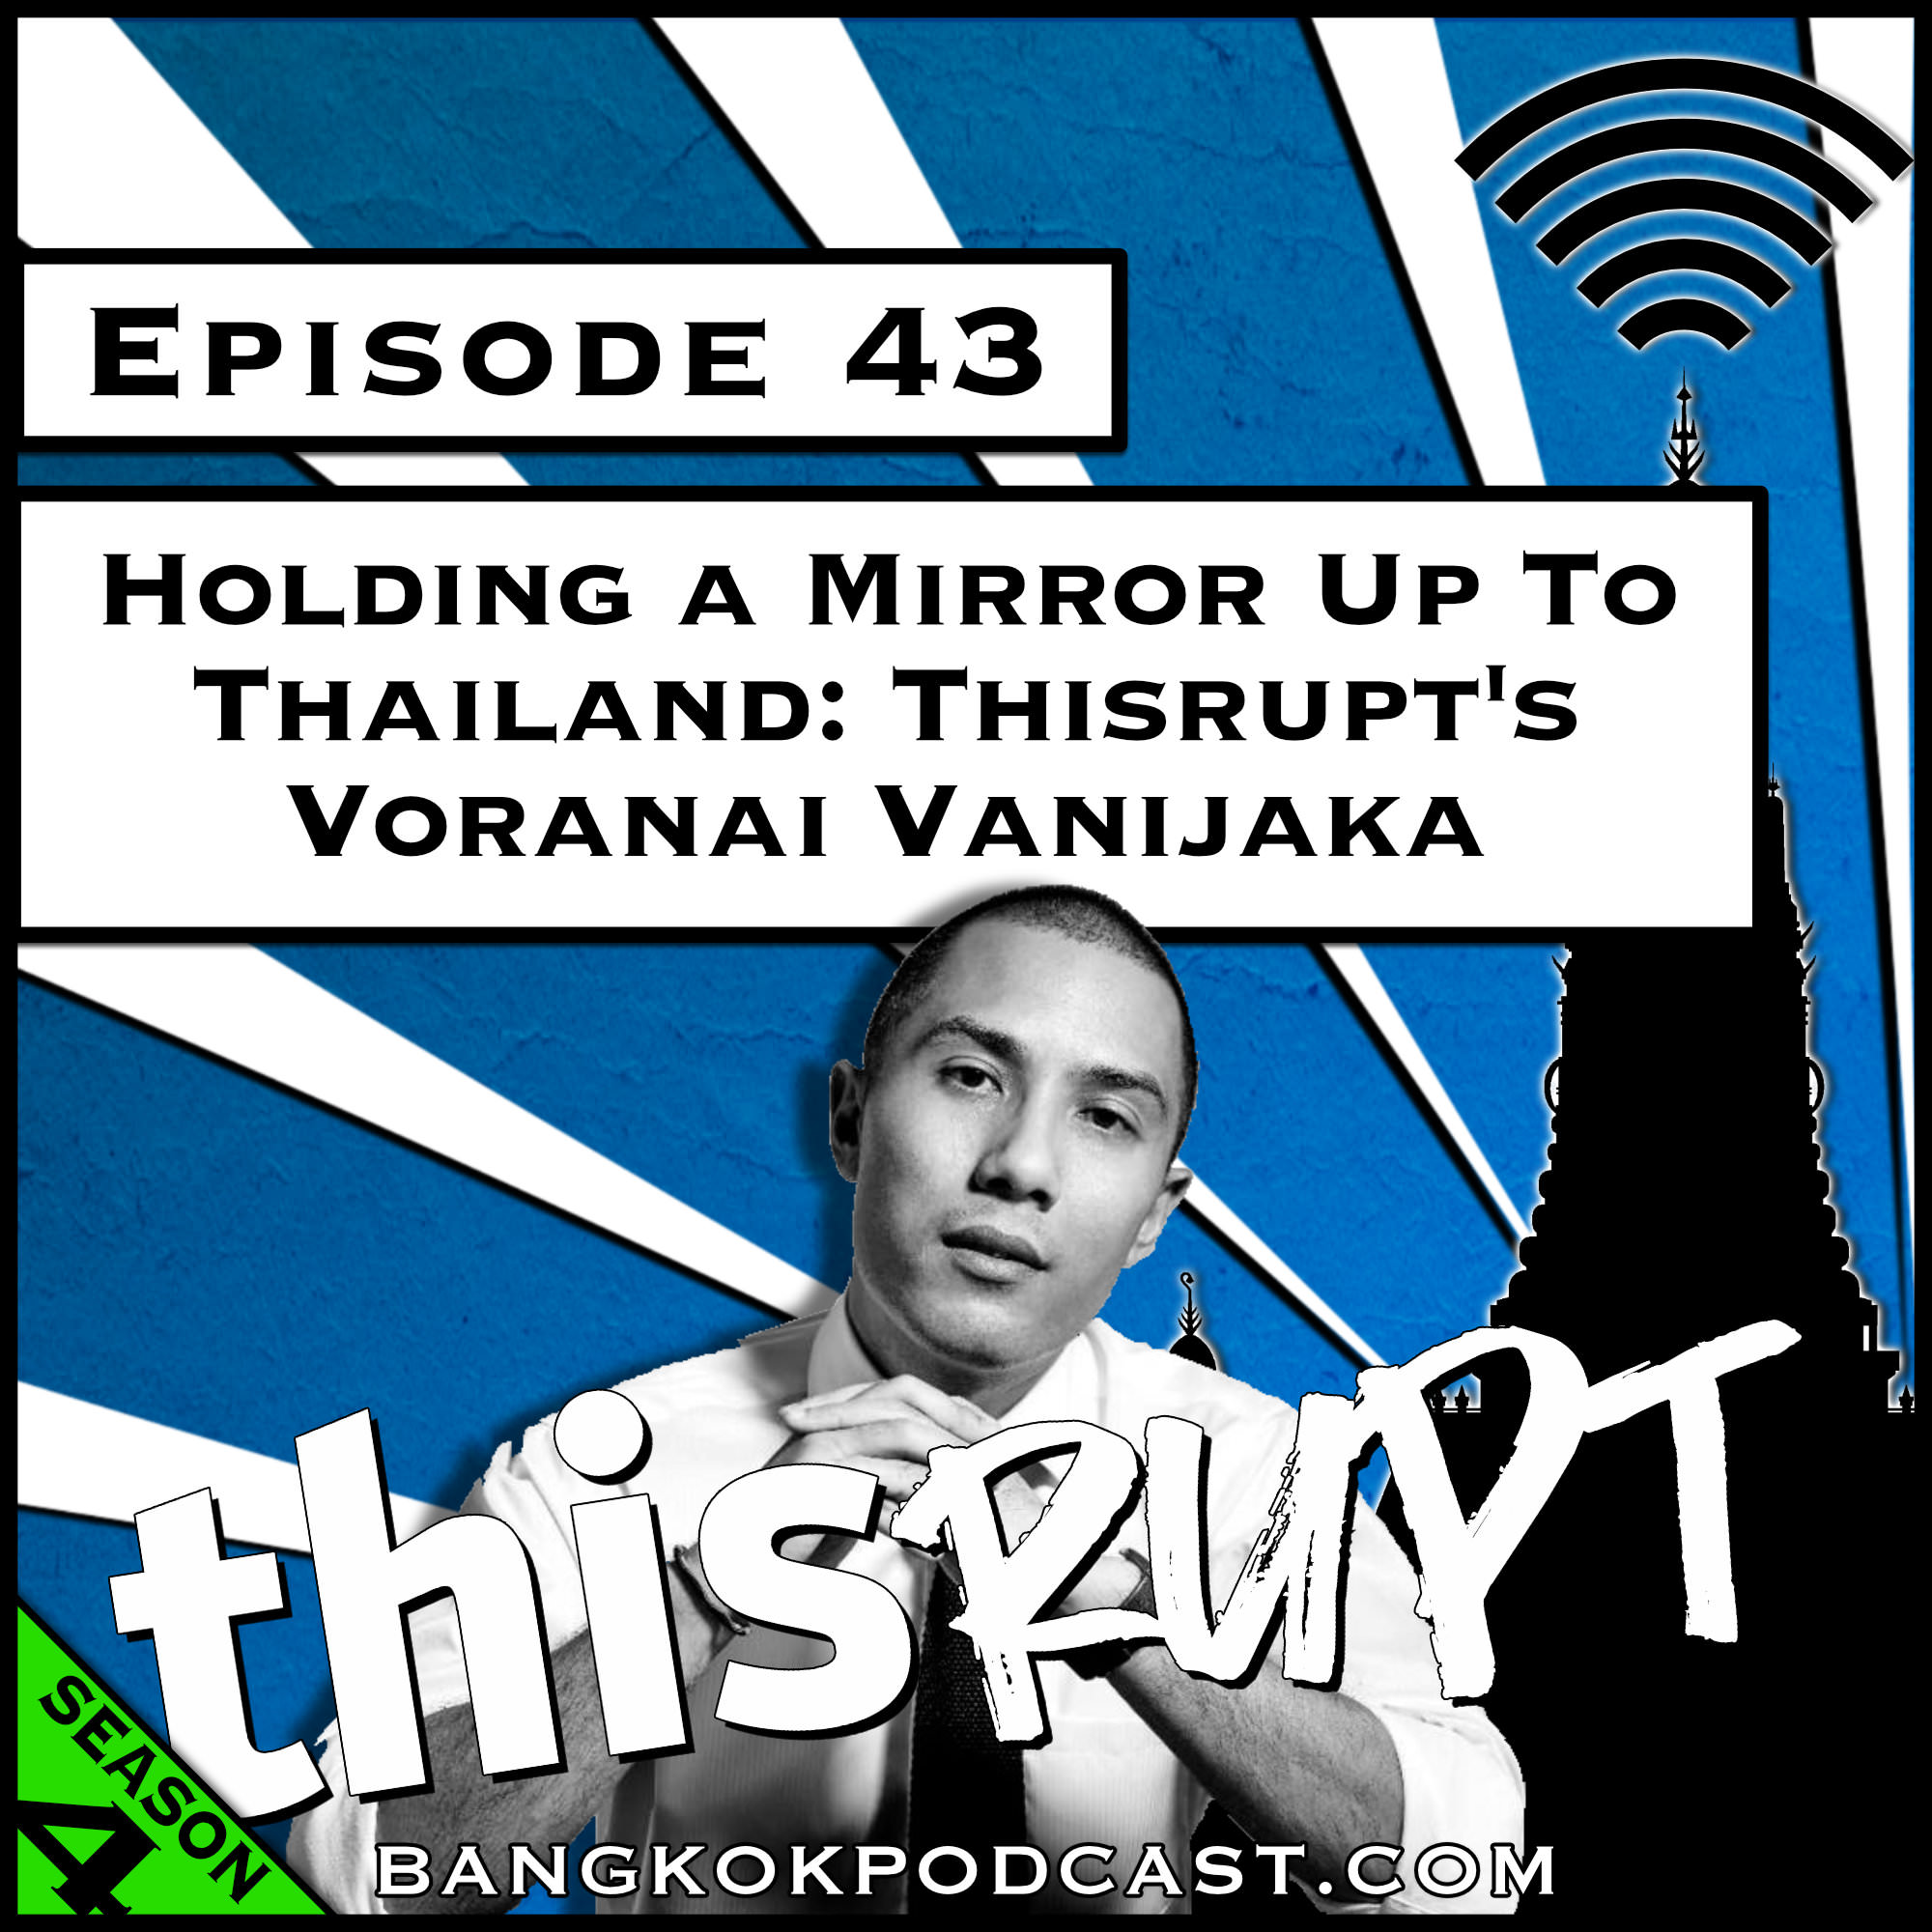 Holding a Mirror Up to Thailand: Thisrupt's Voranai Vanijaka [Season 4, Episode 43]